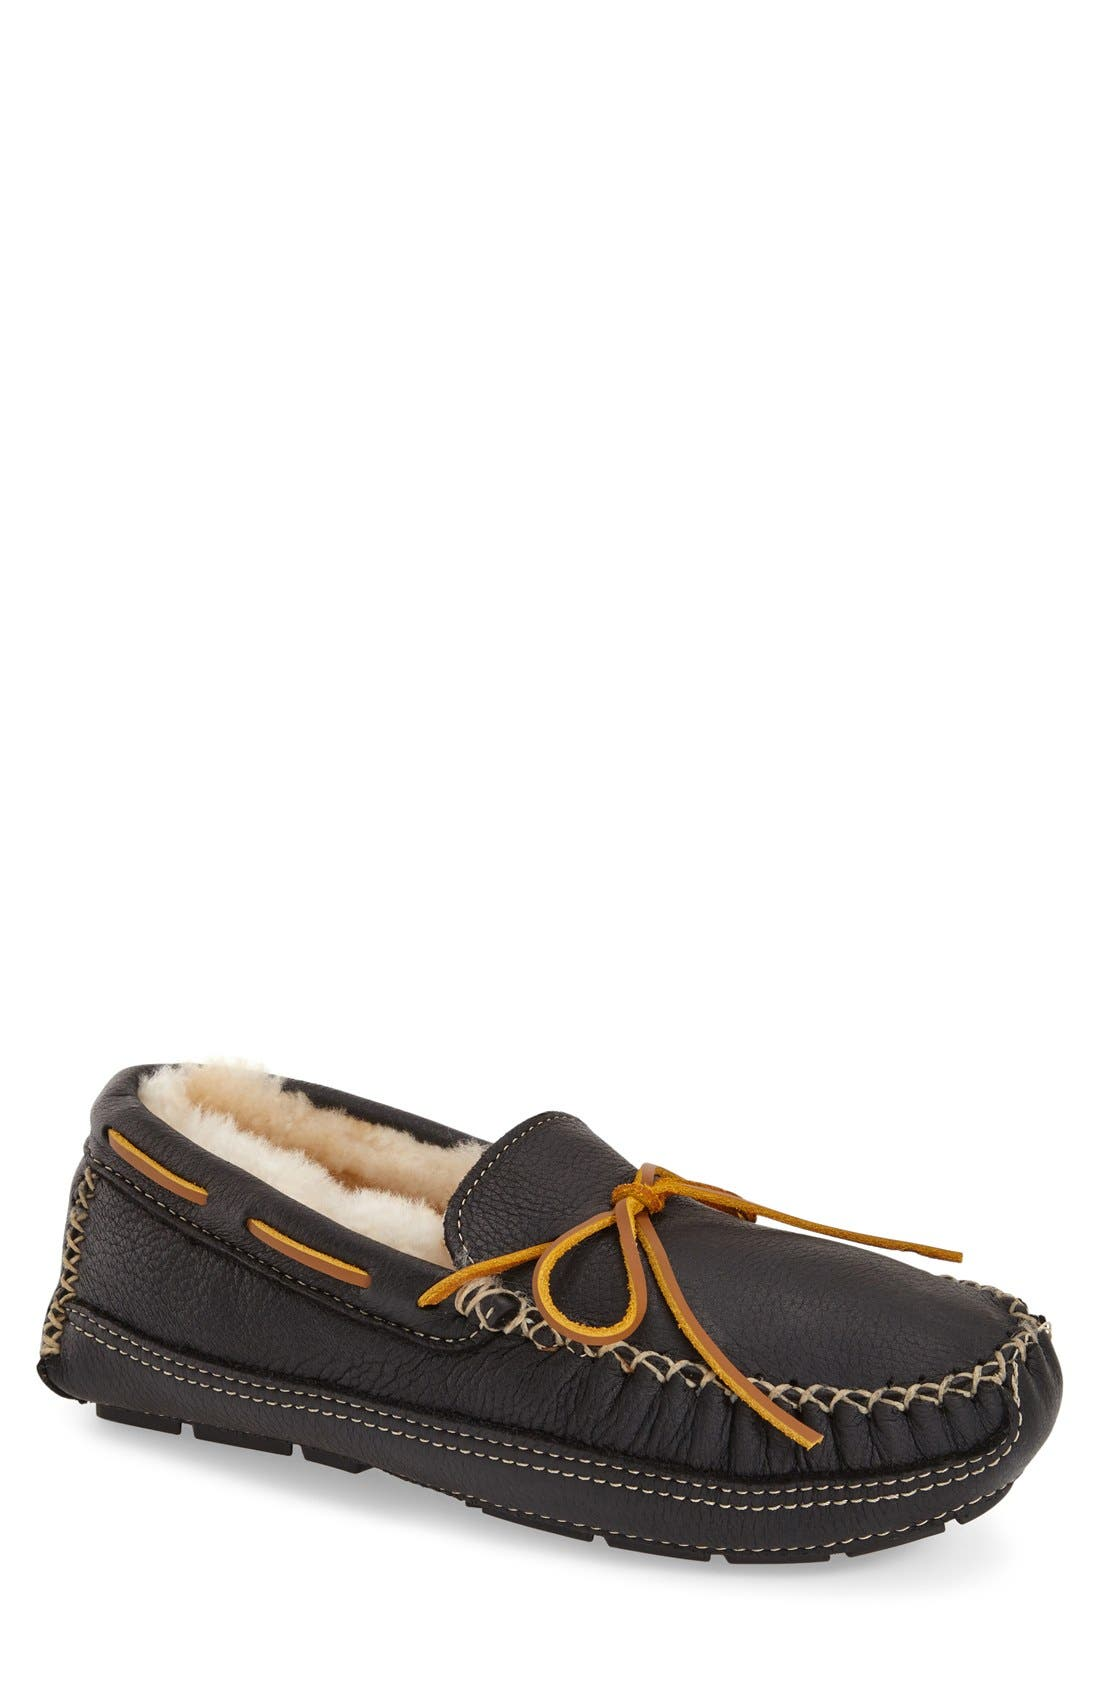 Genuine Shearling Leather Slipper,                             Main thumbnail 1, color,                             BLACK